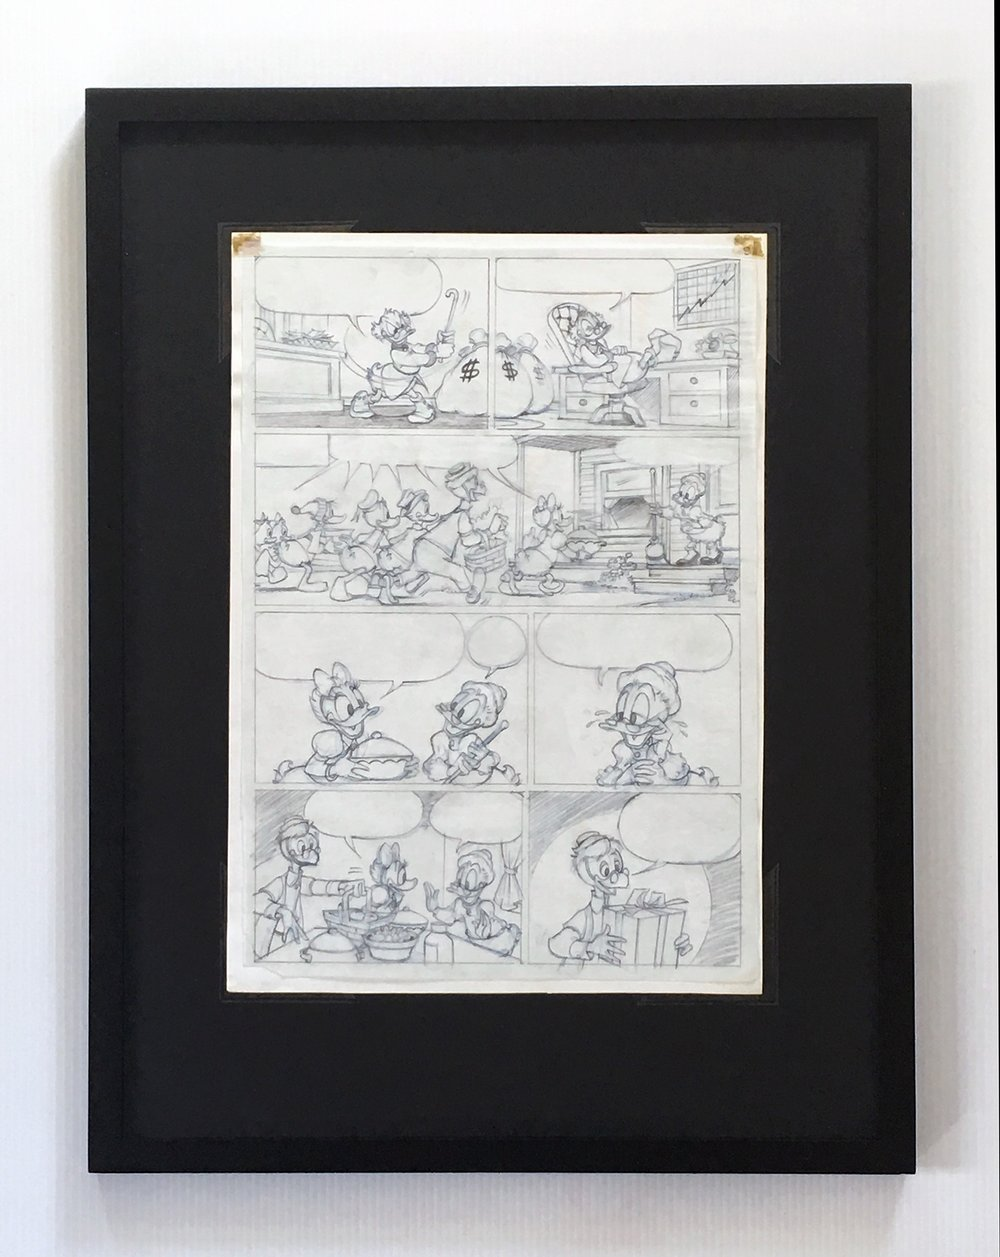 Penciled Layer Displayed on Reverse Side of Inked Layer